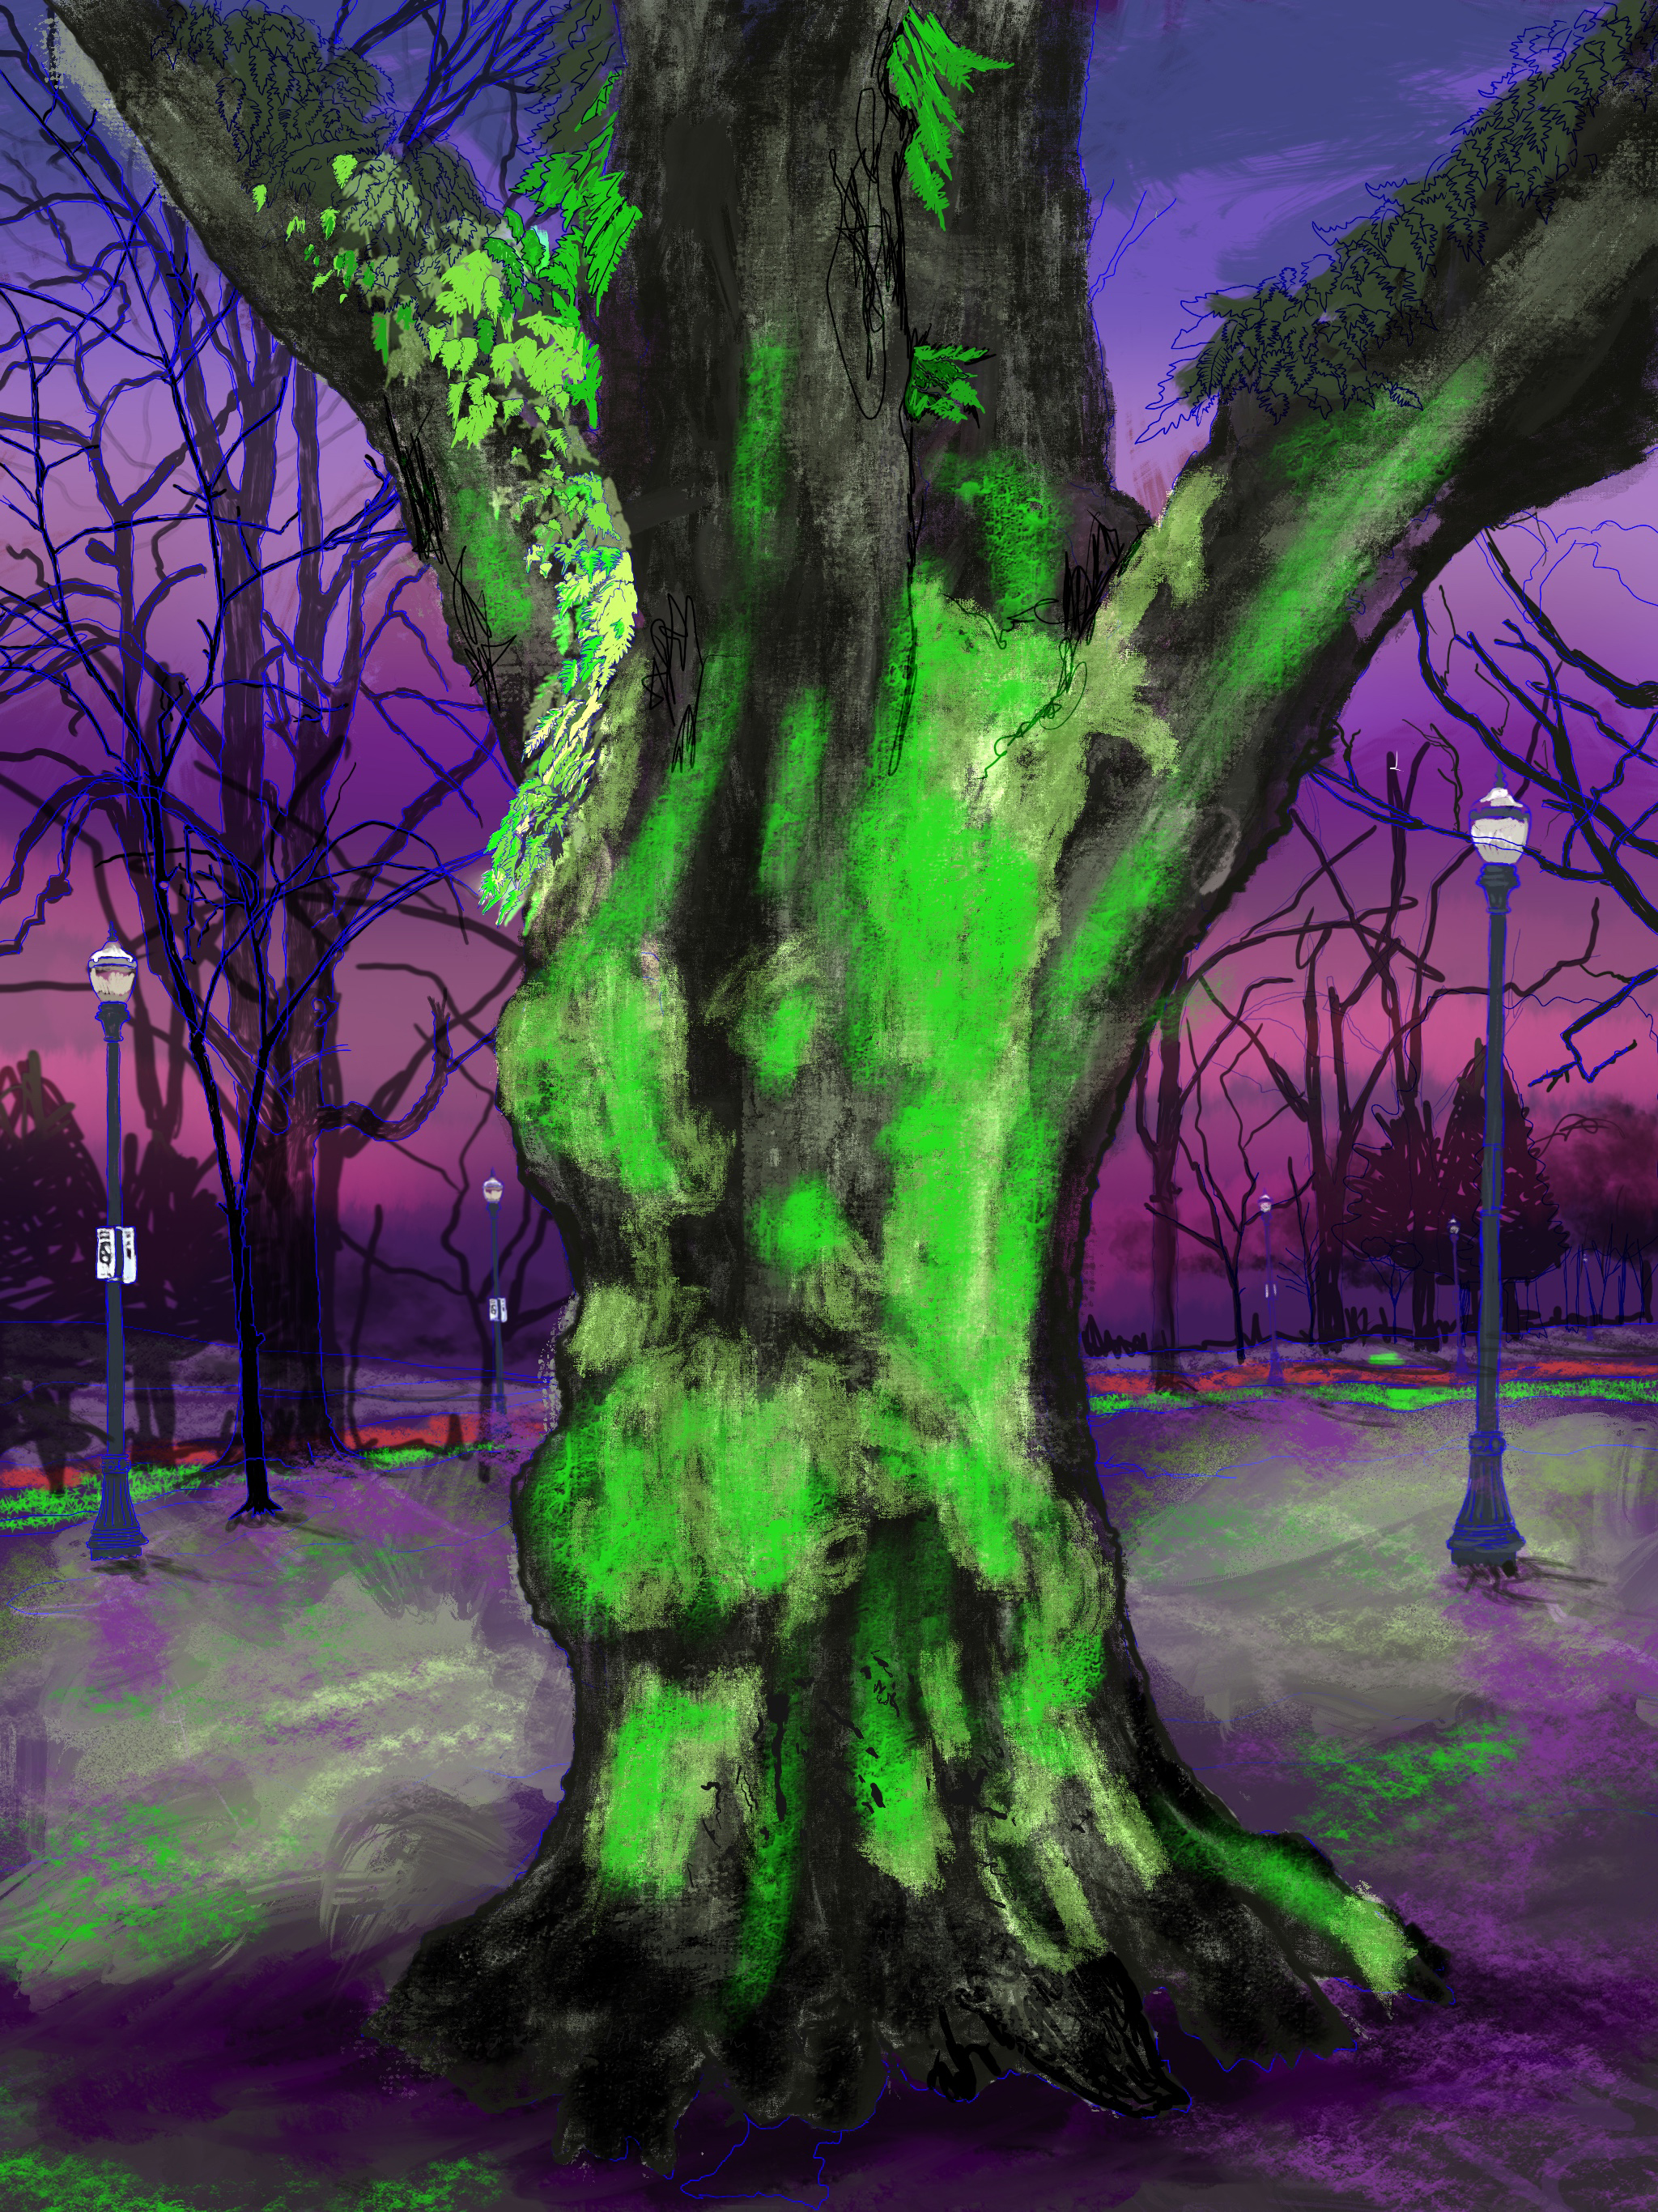 """Giant Moss Covered Tree, 4, North Park Blocks. Portland, OR   19""""x13"""", (48.26x33.02cm) Dimensions Variable   Electronics Painting, iPad, Procreate, © 2017"""